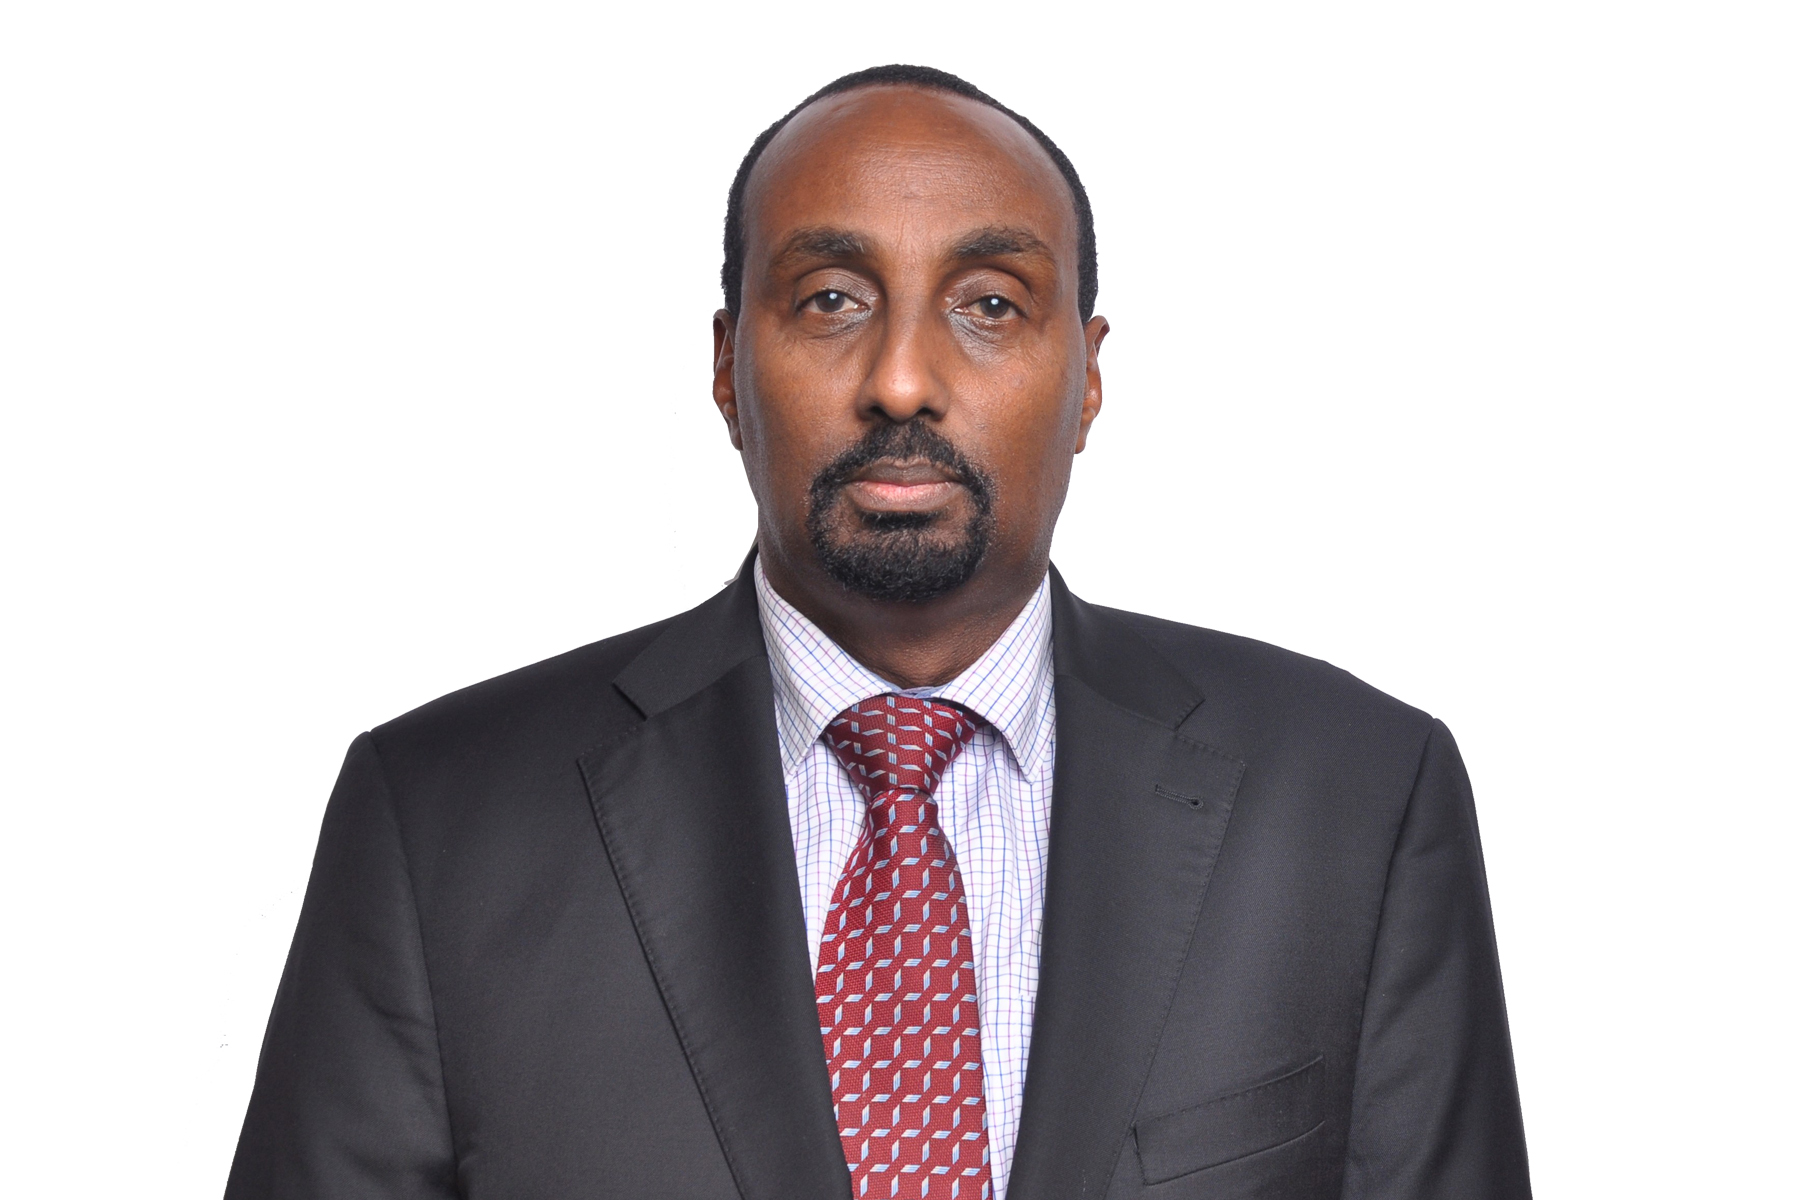 Mr. Abdi Mohamud Ahmed